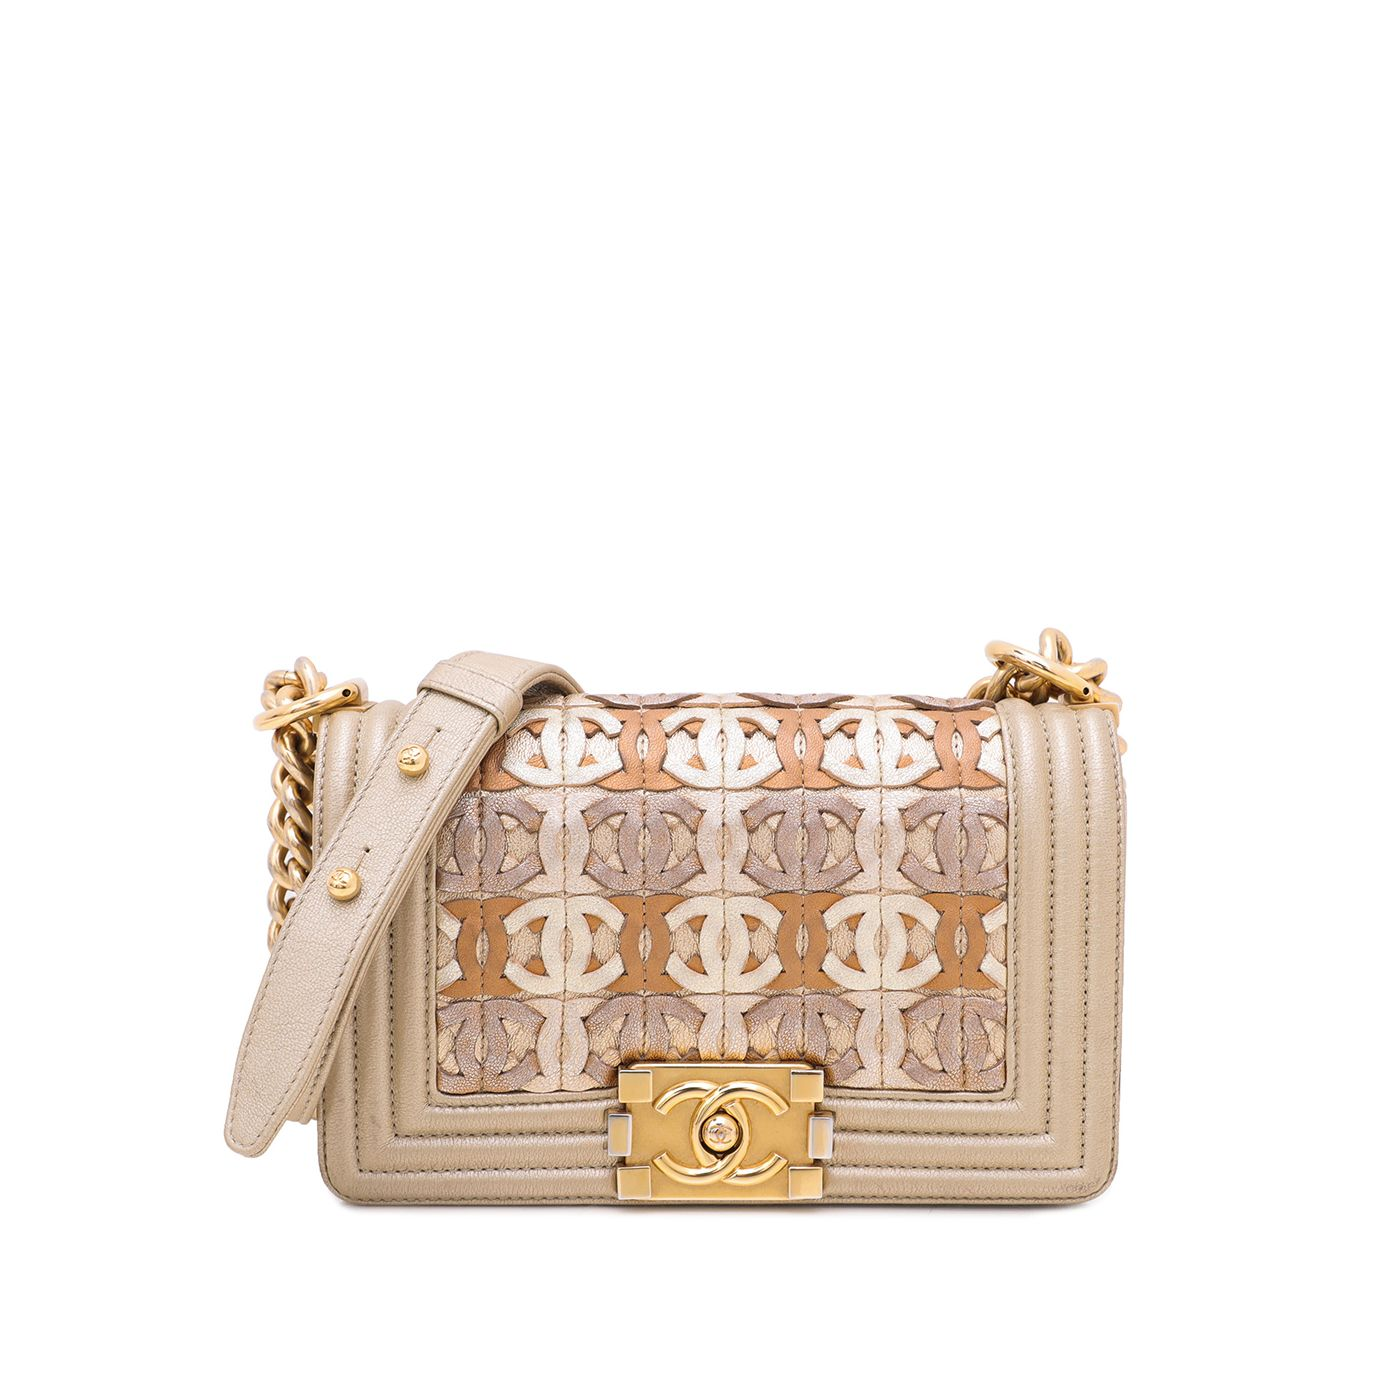 Chanel Champagne Le Boy Runway Gold Metallic CC Embellished Small Bag